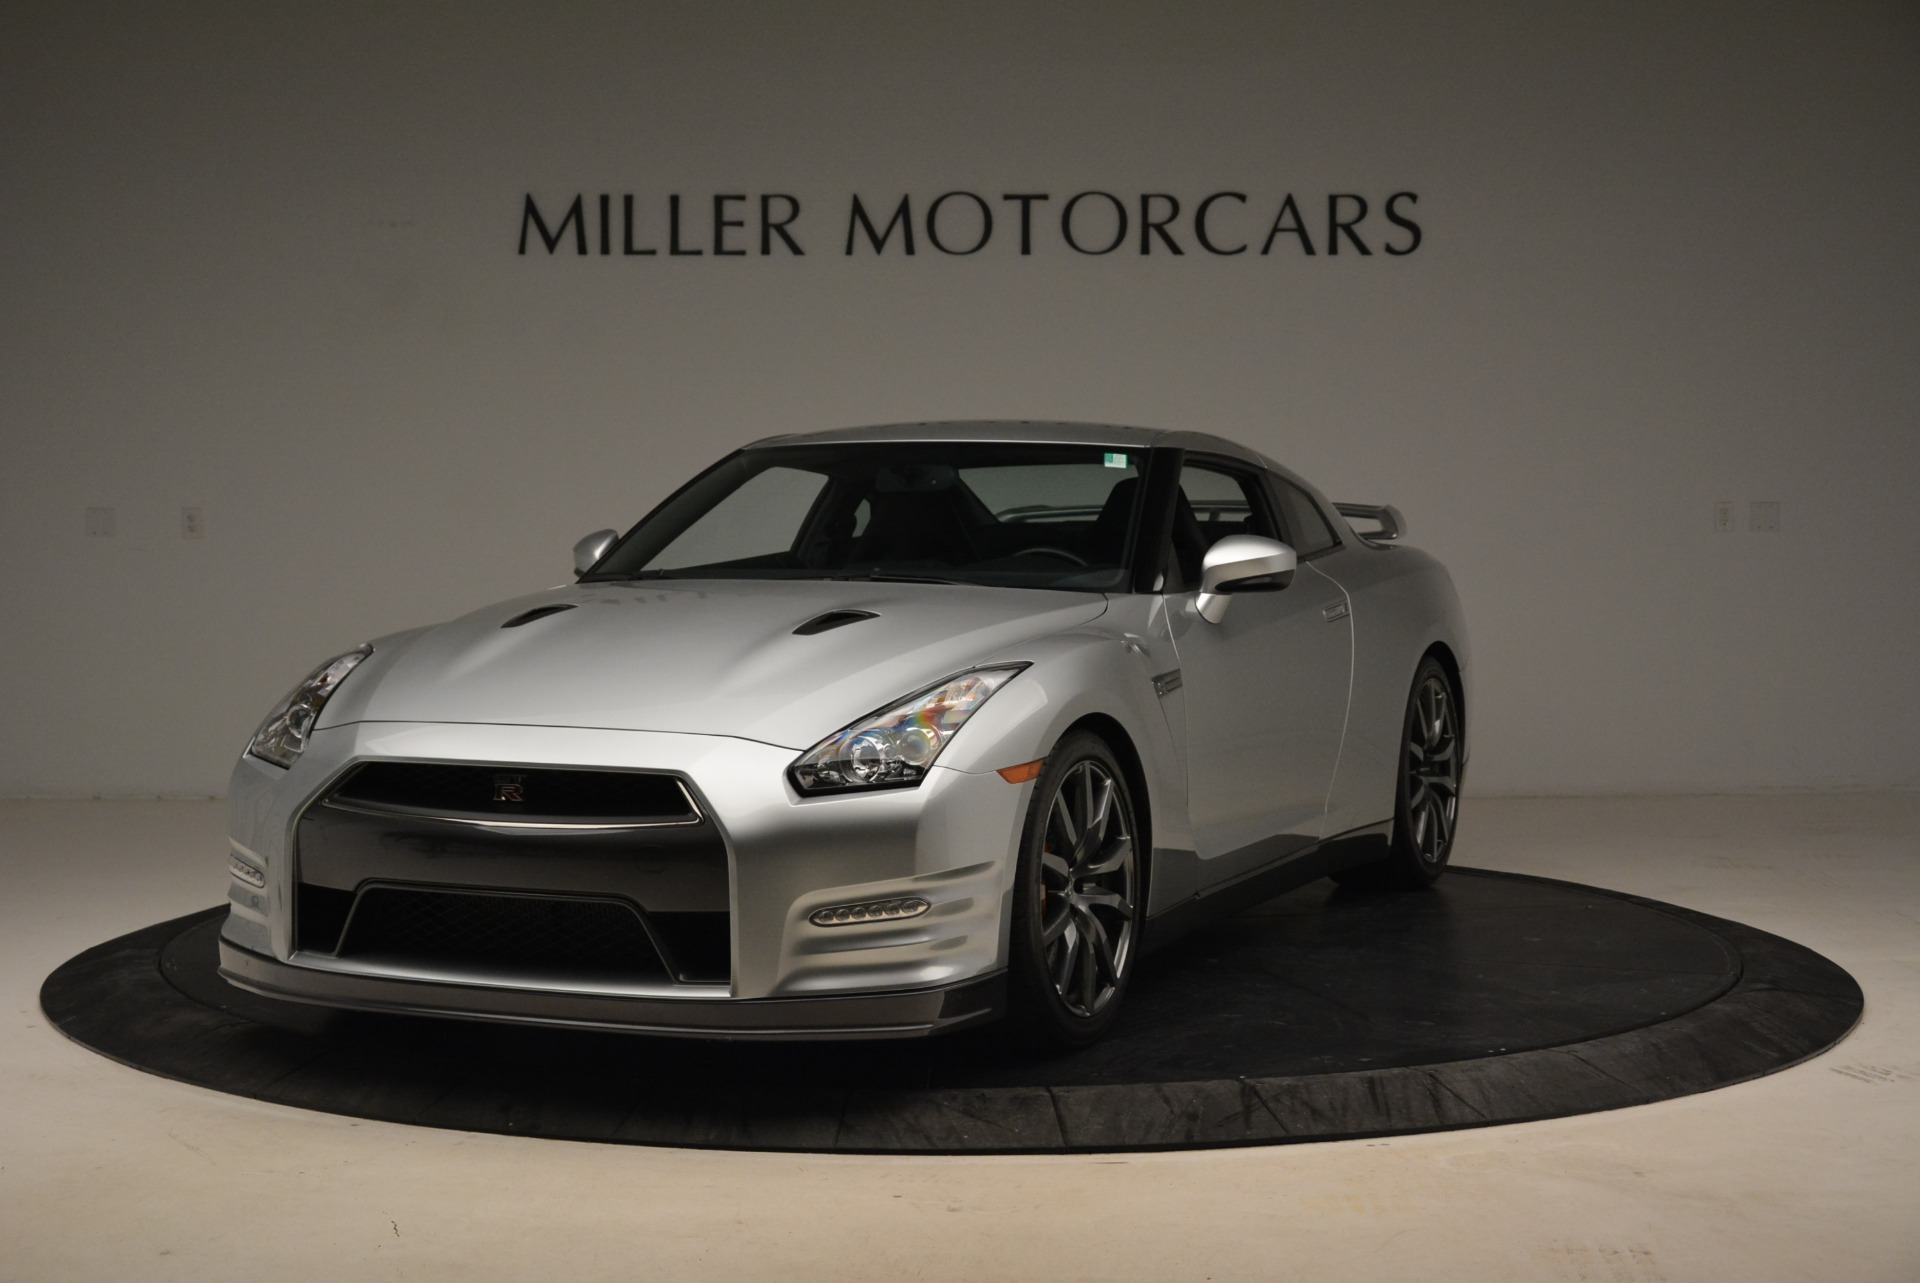 Used 2013 Nissan GT-R Premium for sale Sold at Bugatti of Greenwich in Greenwich CT 06830 1